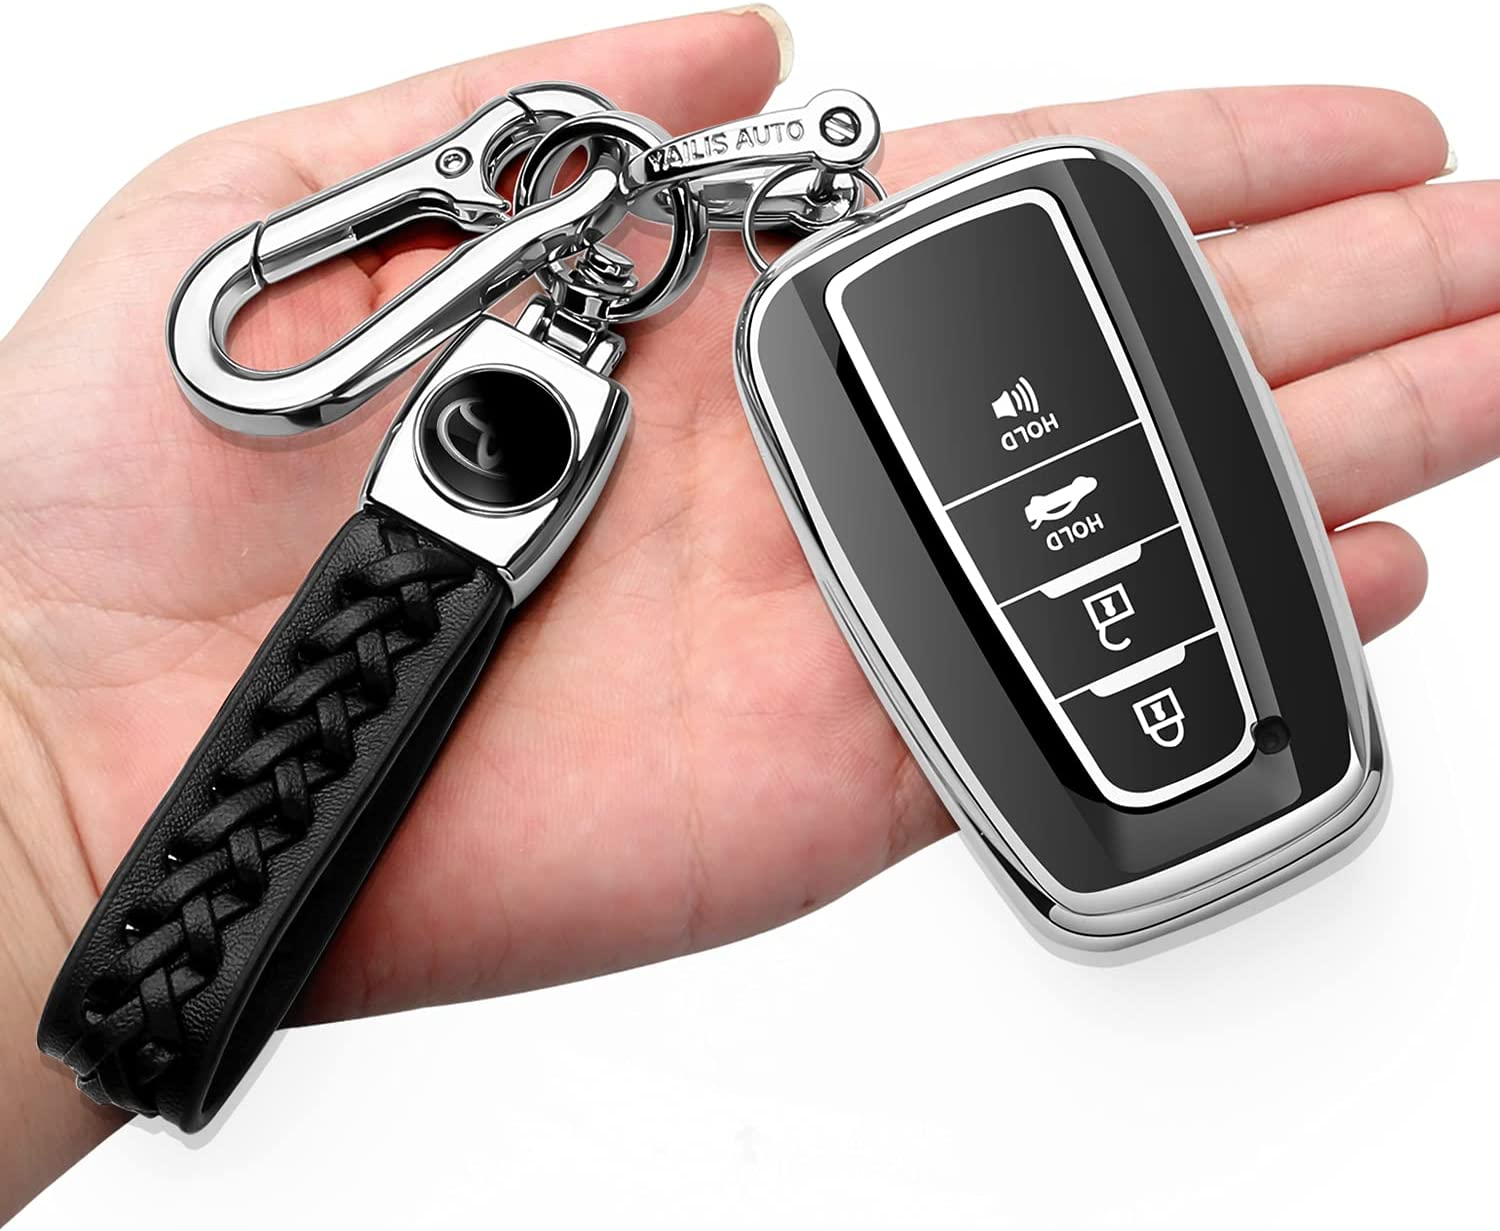 Autophone for Toyota Key Fob Cover Soft TPU Max 80% OFF with Japan's largest assortment De Keychain 360